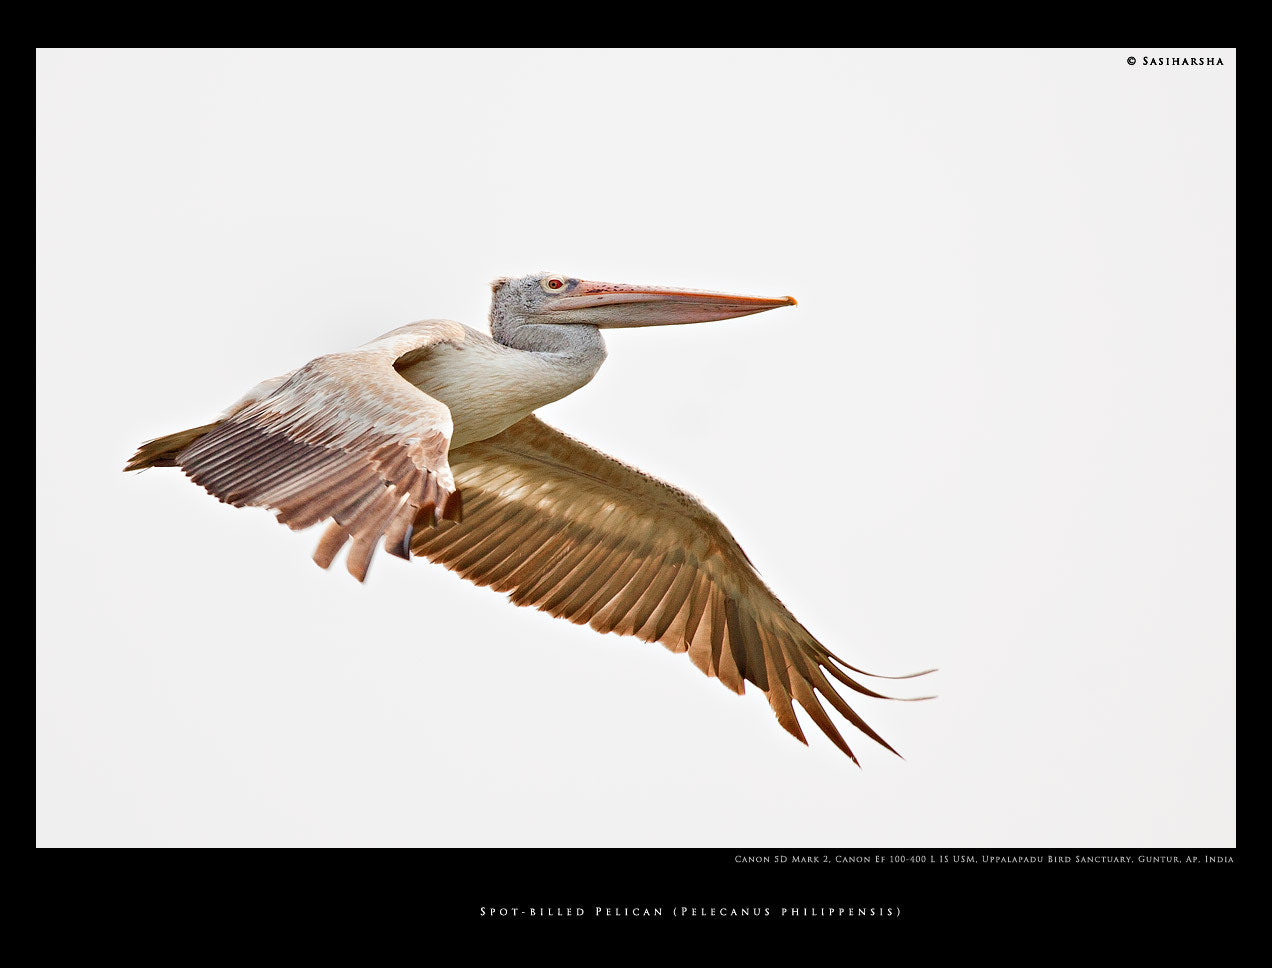 Photograph Pelecanus philippensis in flight by Sasi Harsha Vardhan on 500px